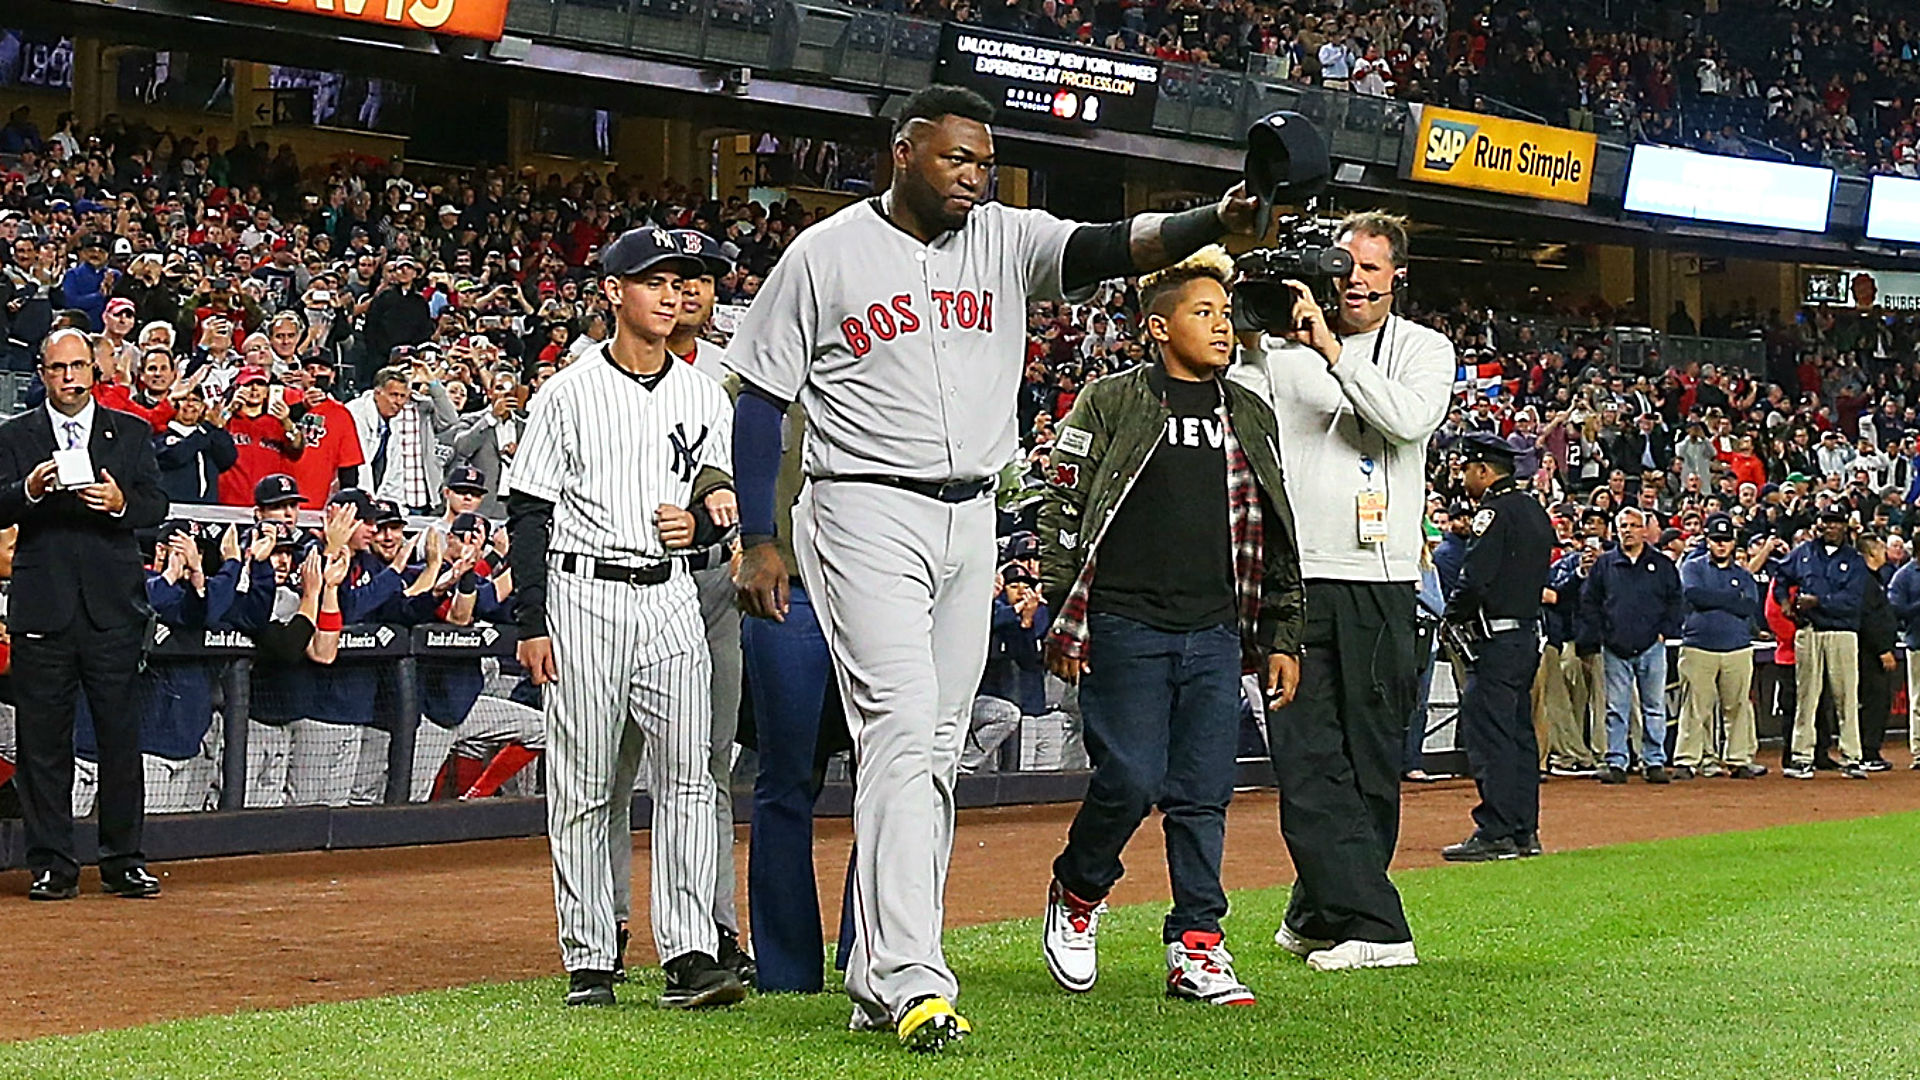 David-ortiz-092916-getty-ftrjpg_1cn40qw6qxr2s1p7vkm6j6pmn6